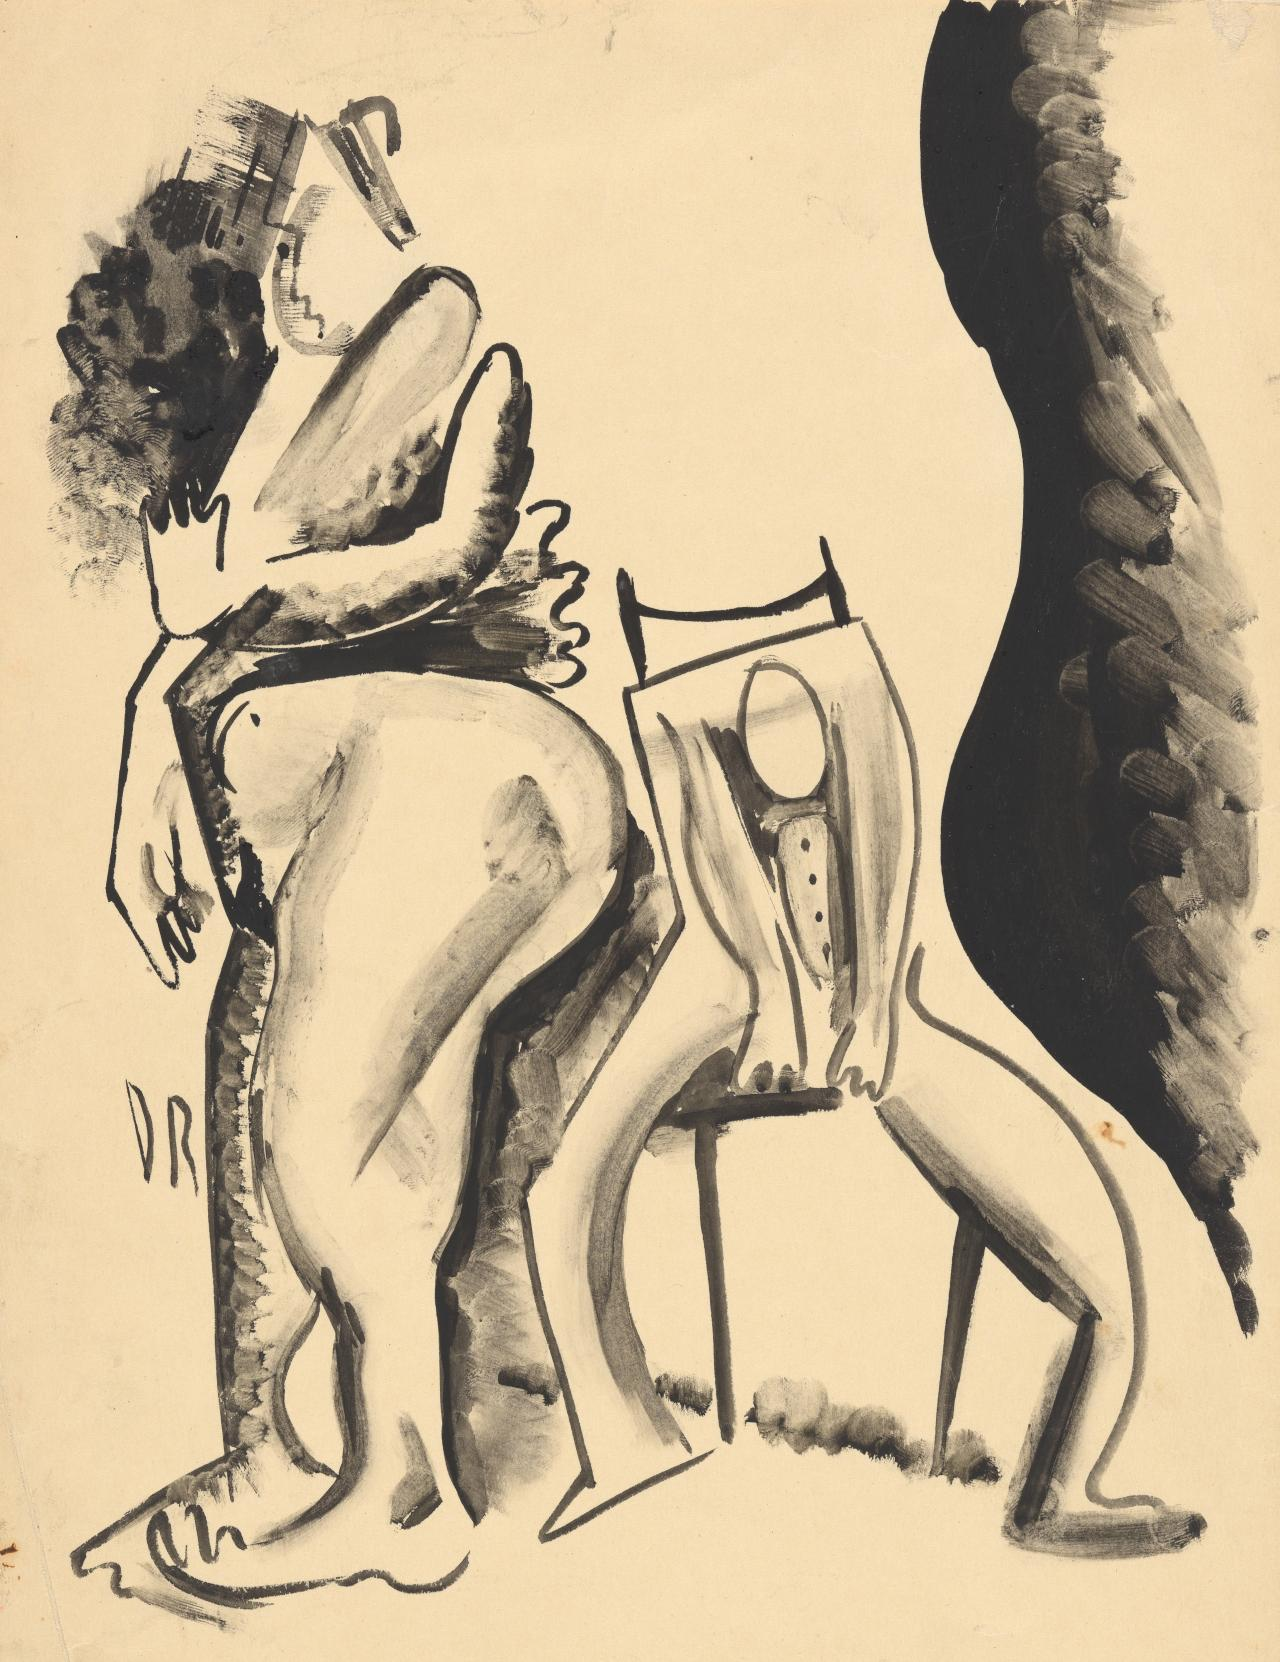 Untitled (Two figures, one steated)